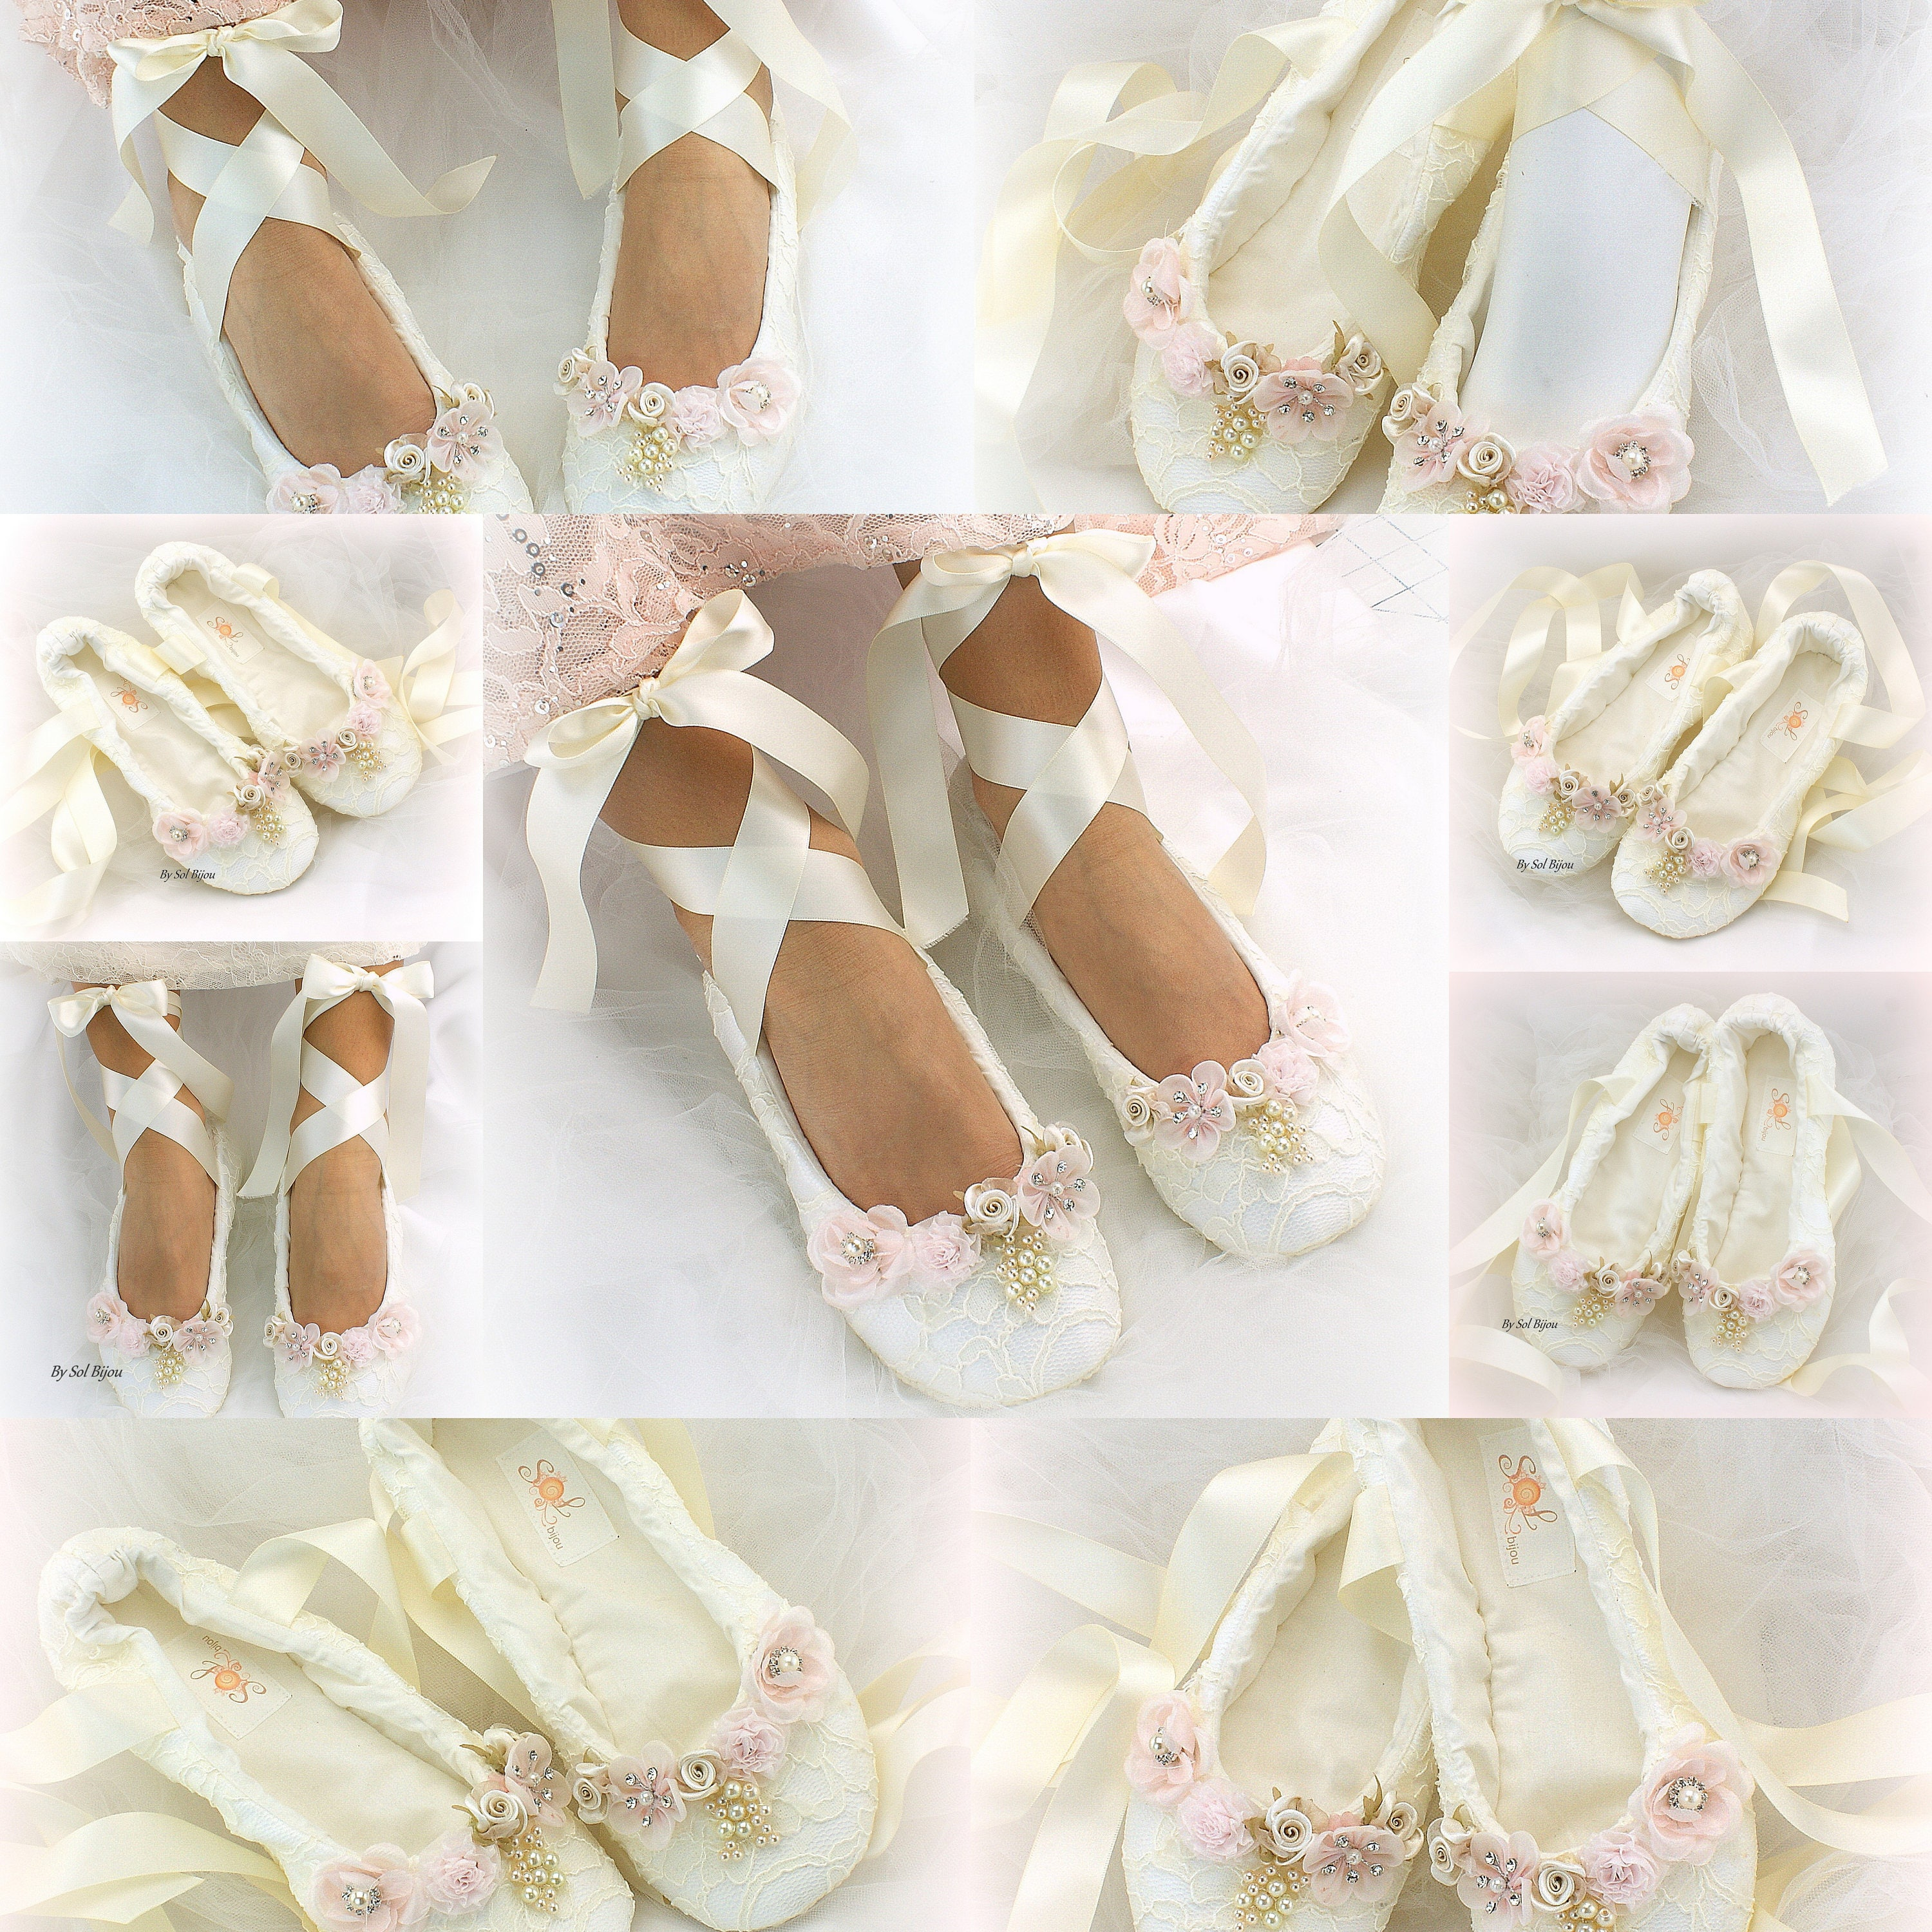 a402fee8114 Ivory Lace Wedding Ballet Shoes Slippers Lace Up Bridal Ballet